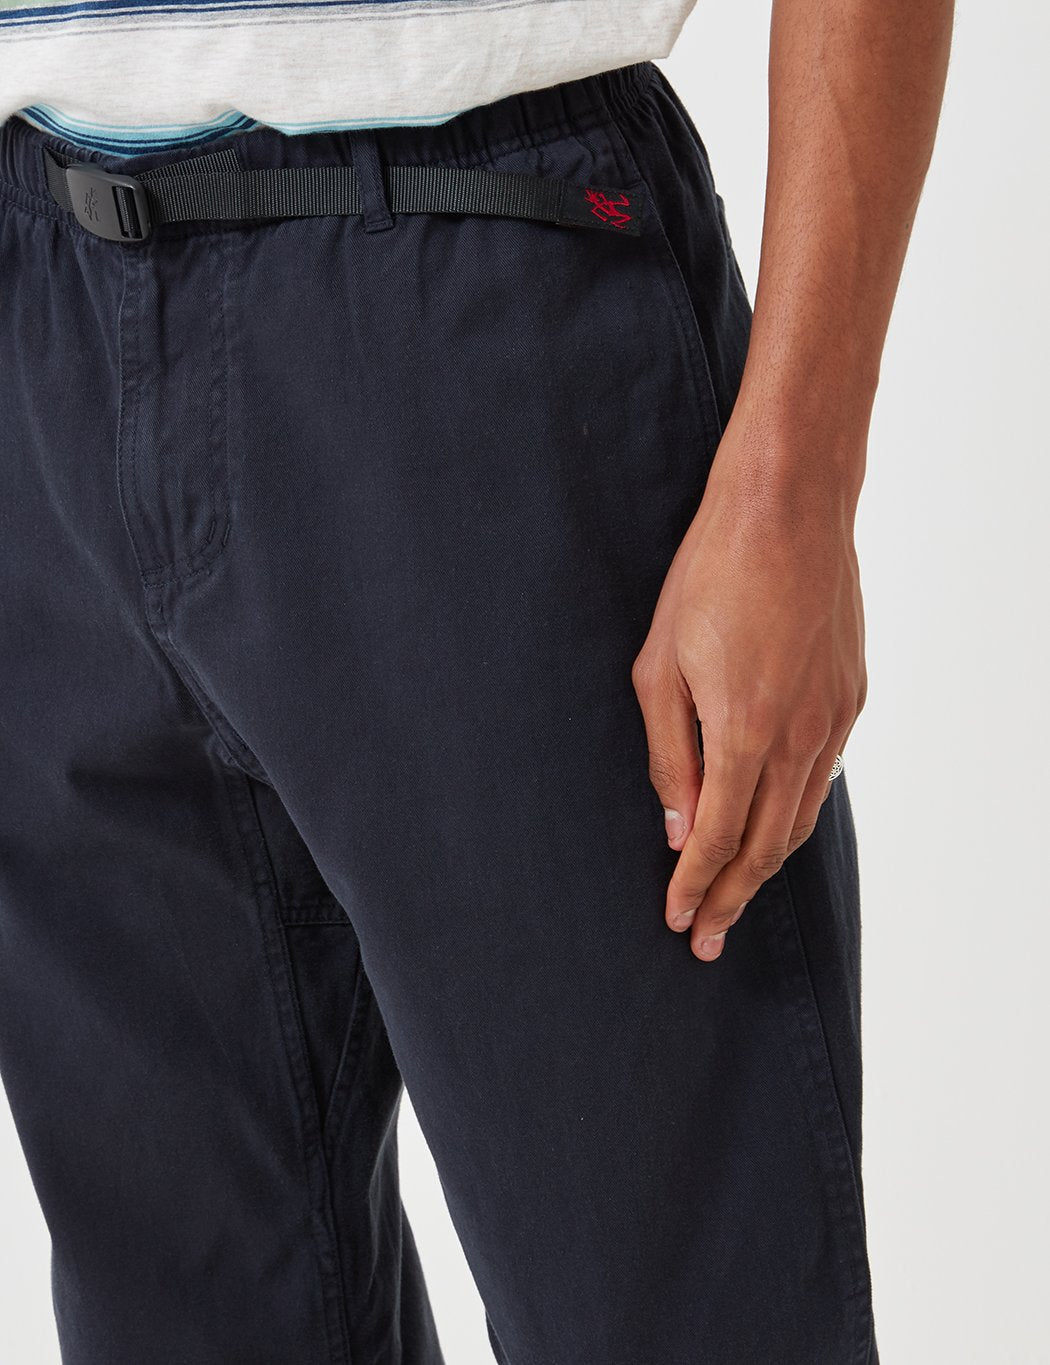 Gramicci Original-Fit G Pant (Relaxed) - Doppel-Navy